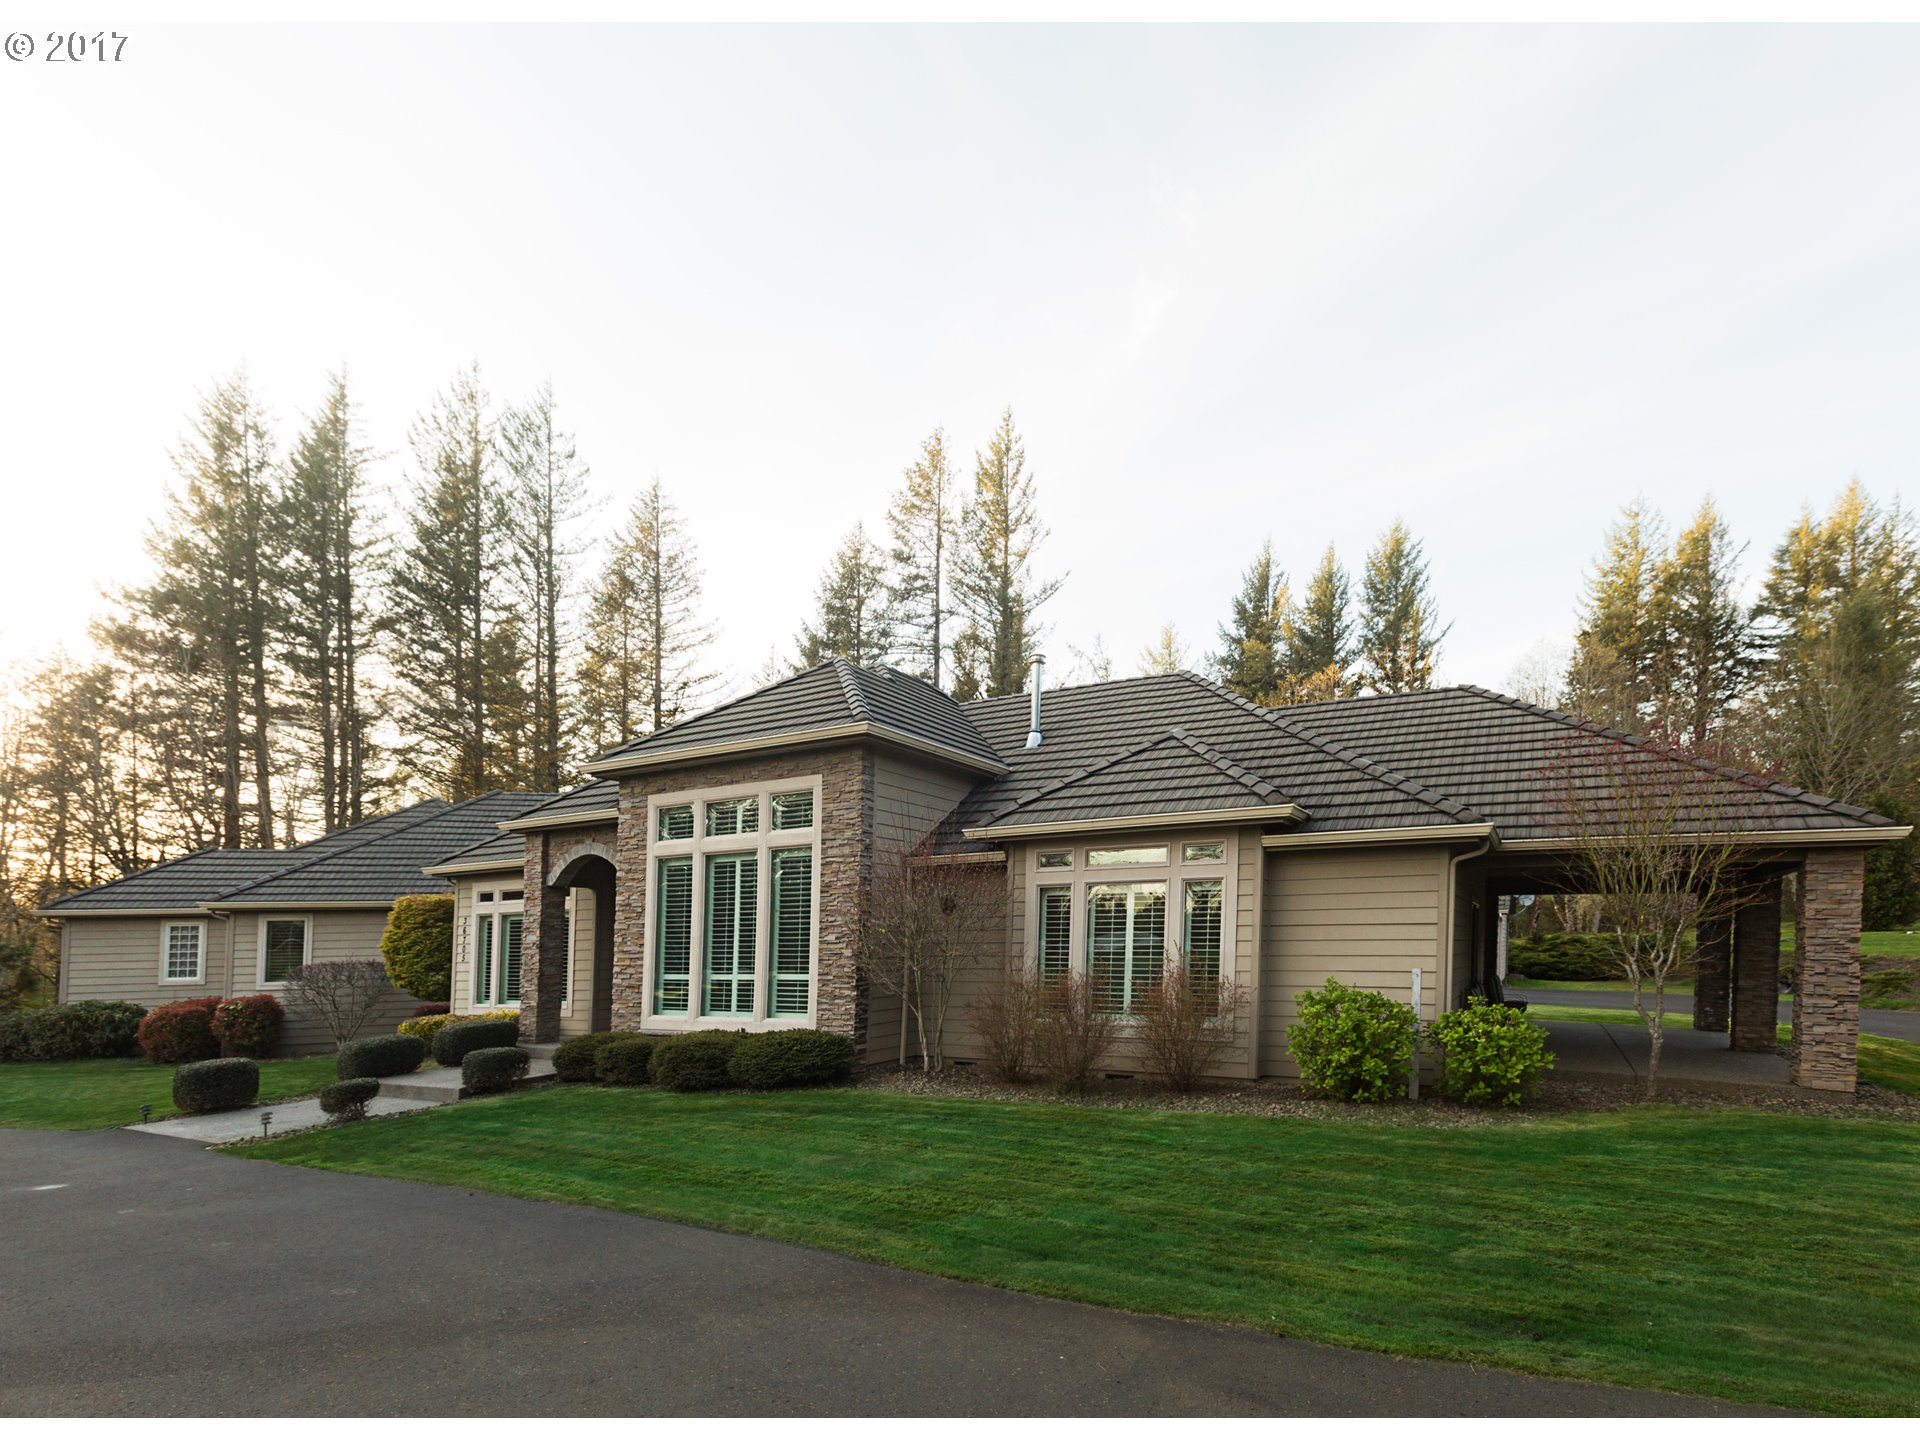 36705 SE 25TH ST, Washougal, WA 98671